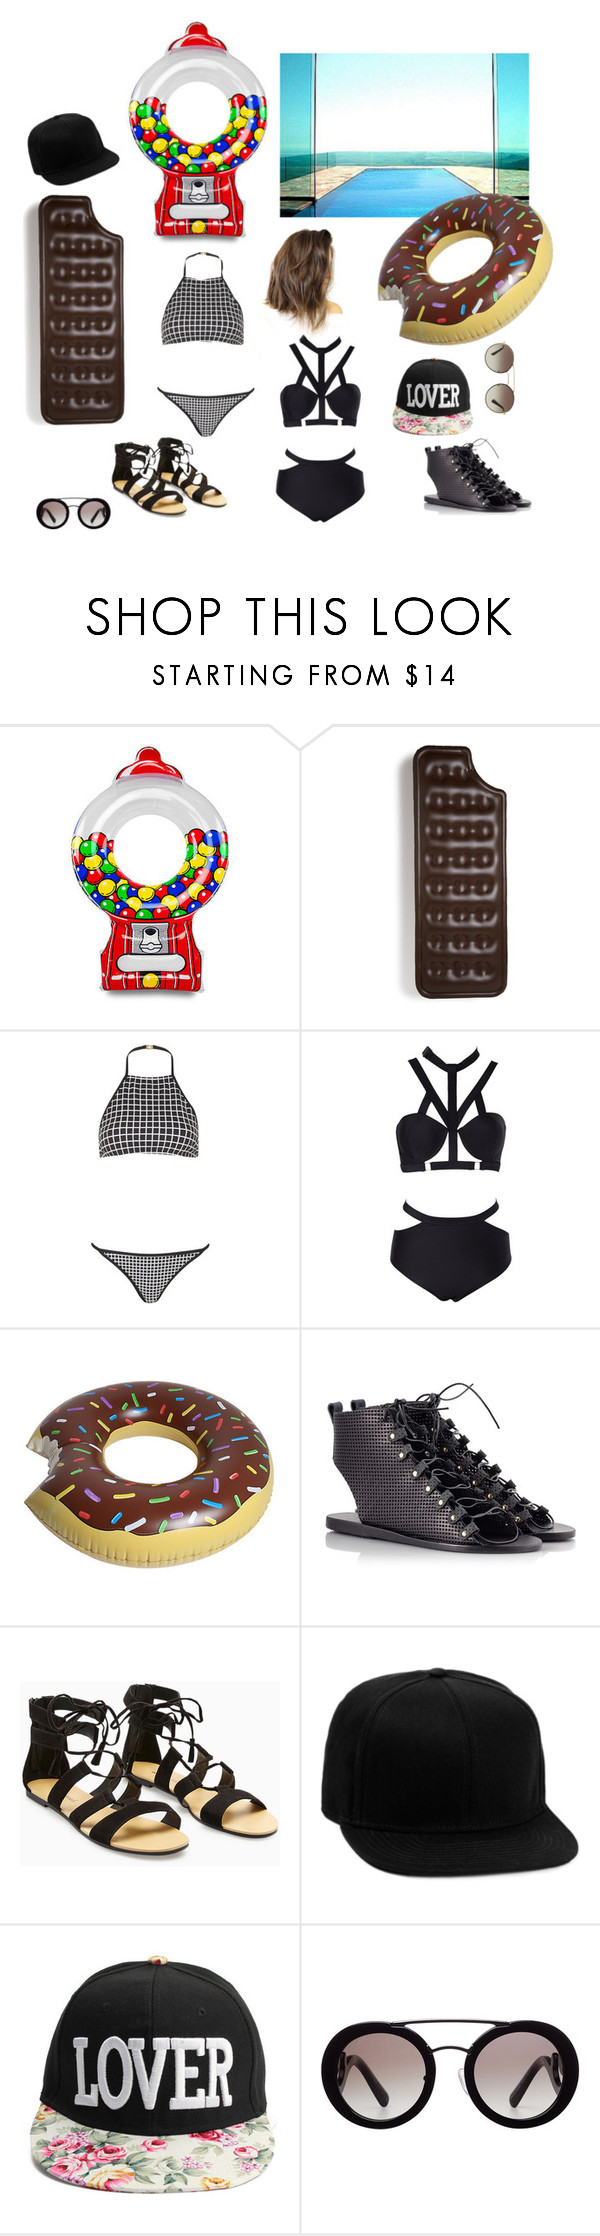 """#Pool"" by yendry-mariela-garcia-perez ❤ liked on Polyvore featuring interior, interiors, interior design, home, home decor, interior decorating, Big Mouth, Topshop, Ancient Greek Sandals and Topman"